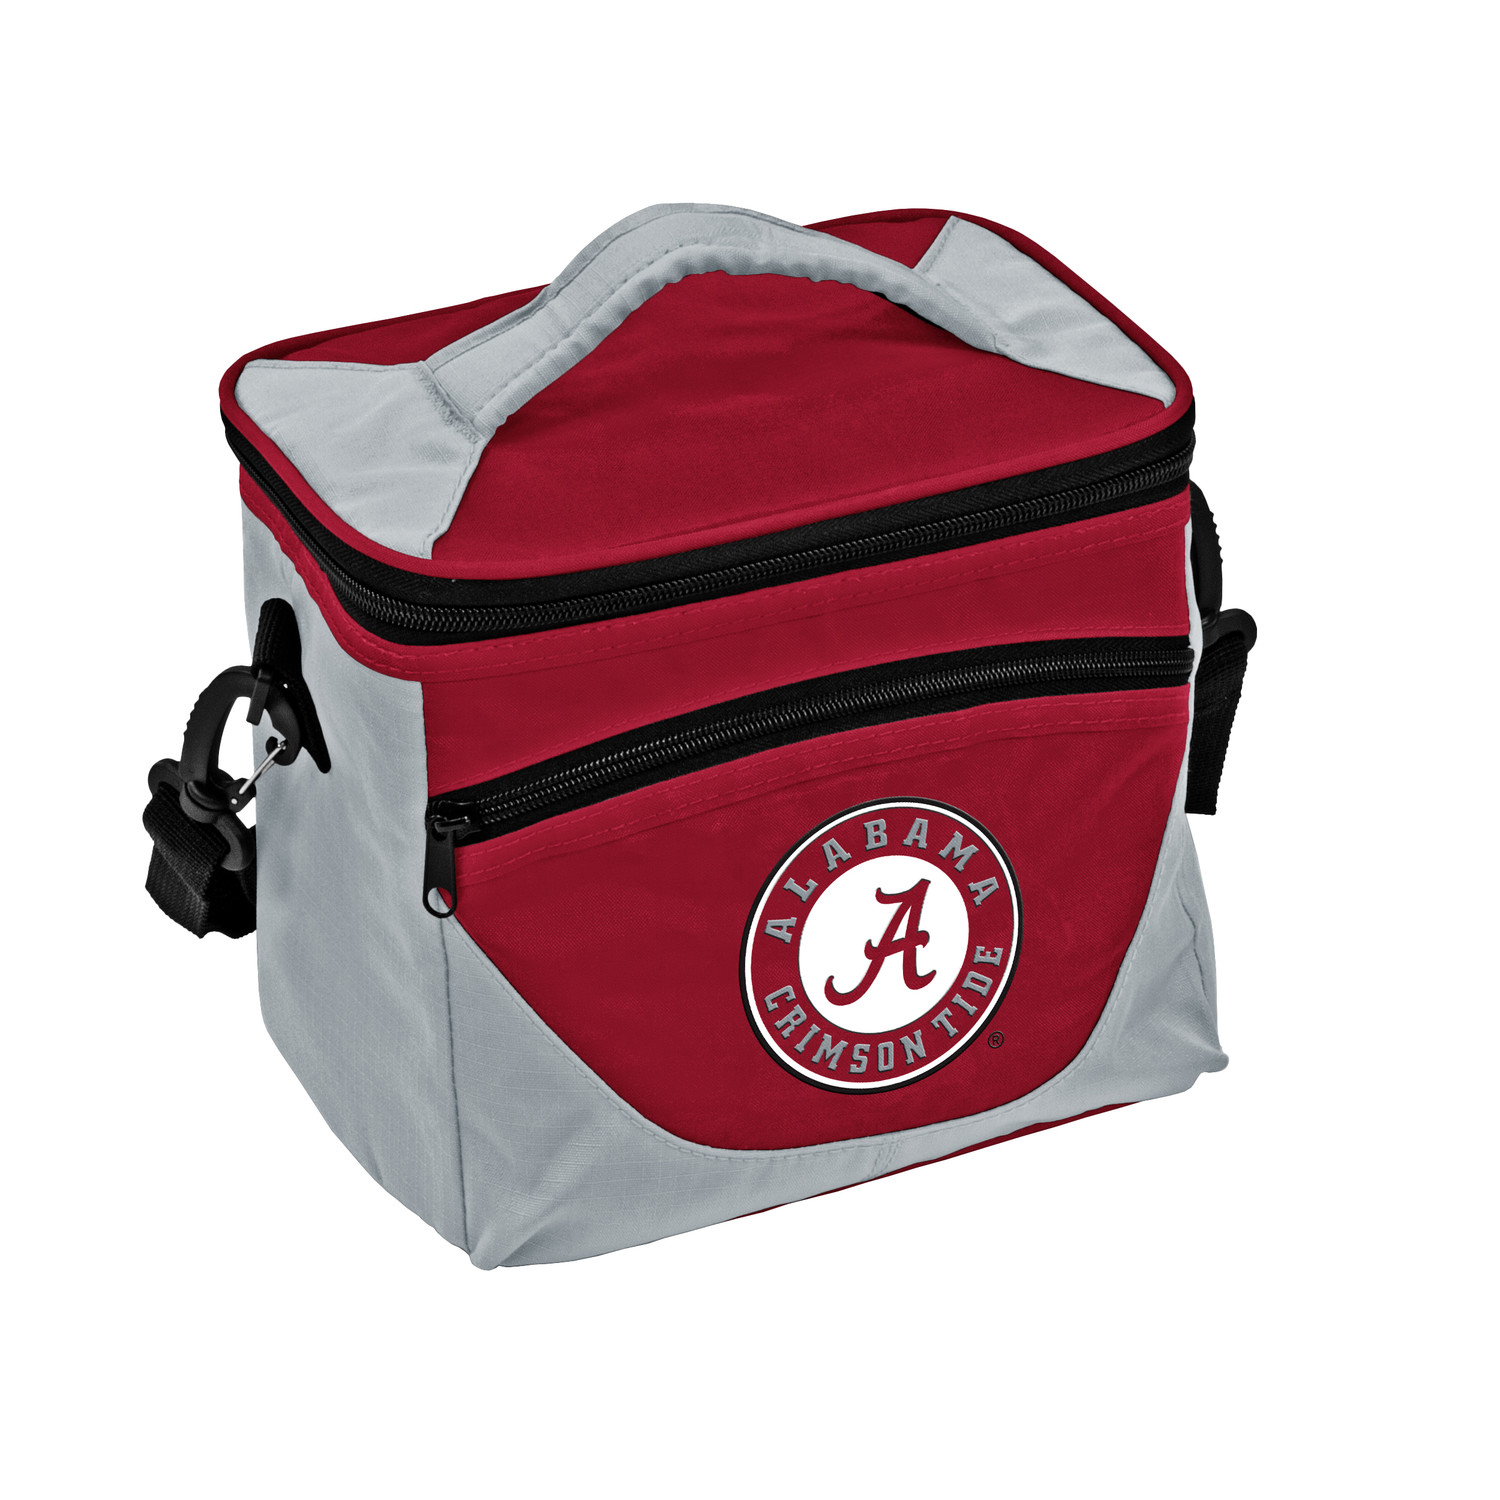 Alabama lunch cooler